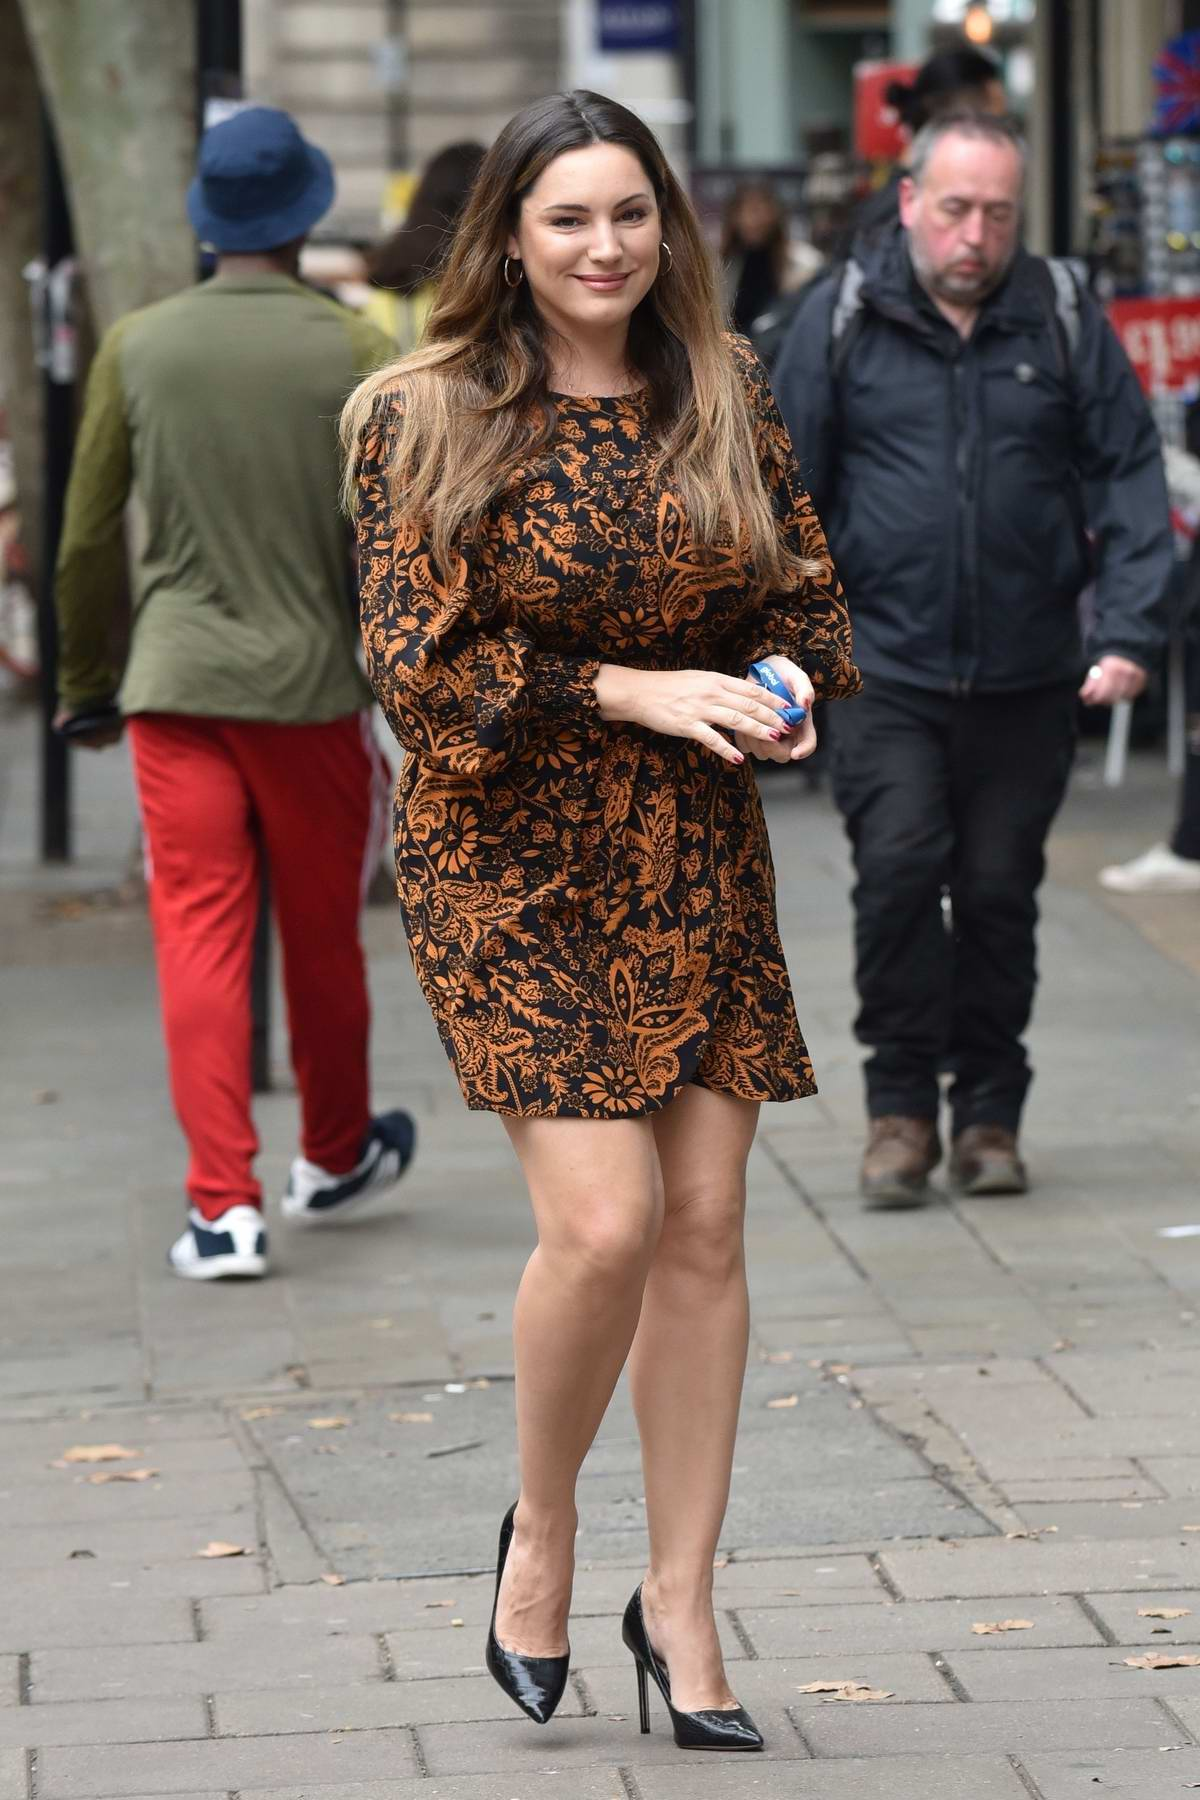 Kelly Brook seen arriving at the Global Studios for her Heart Radio show in London, UK